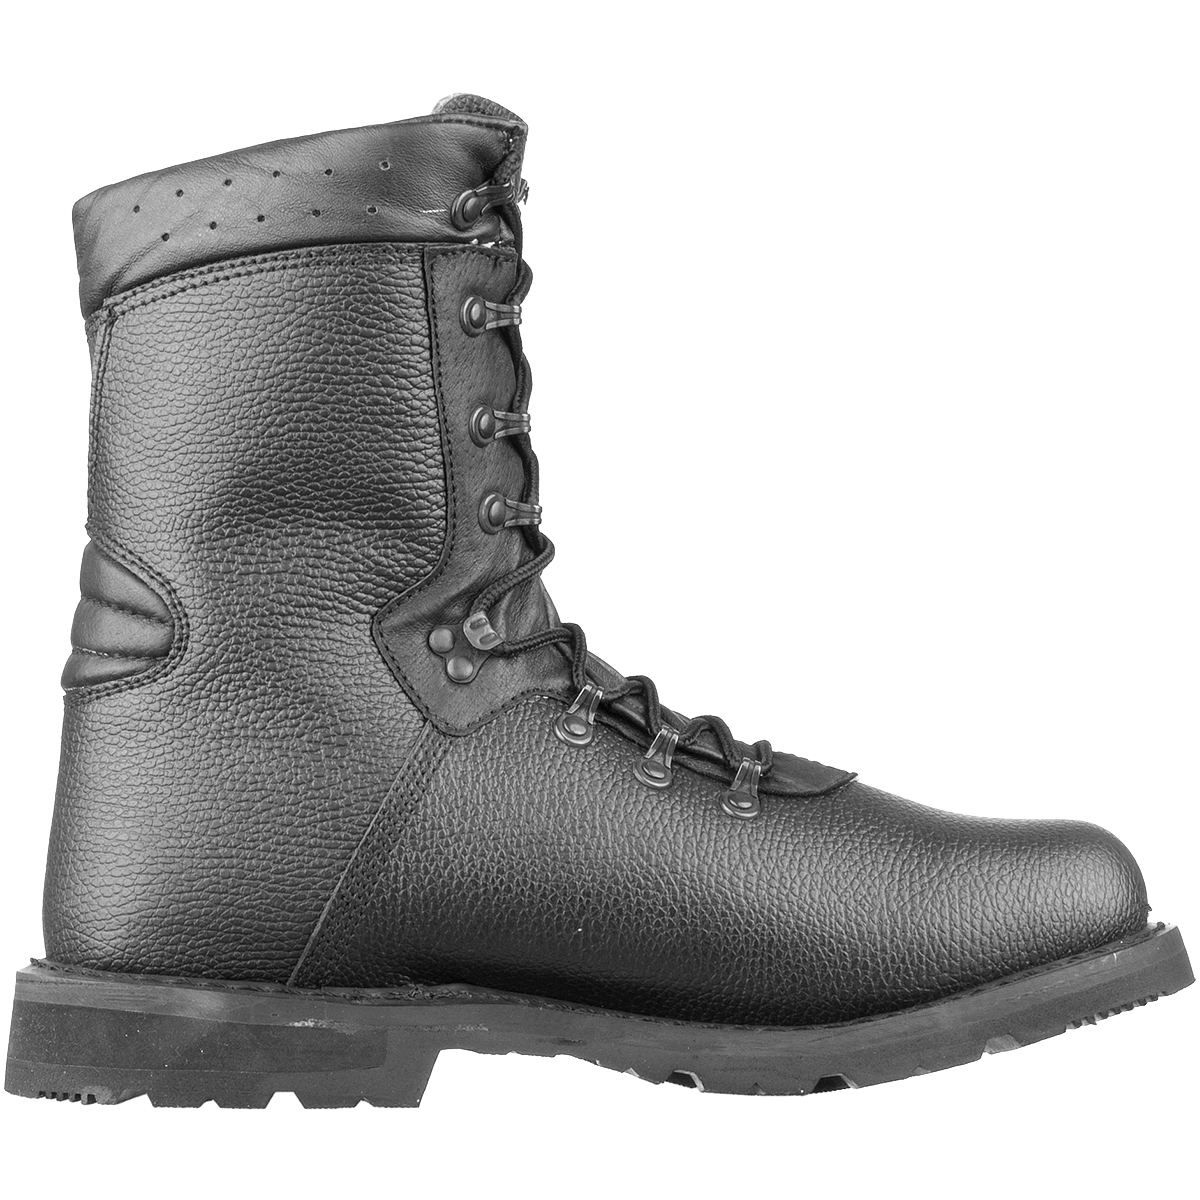 Brandit Bw German Army Combat Boots Model 2000 Leather Military ...